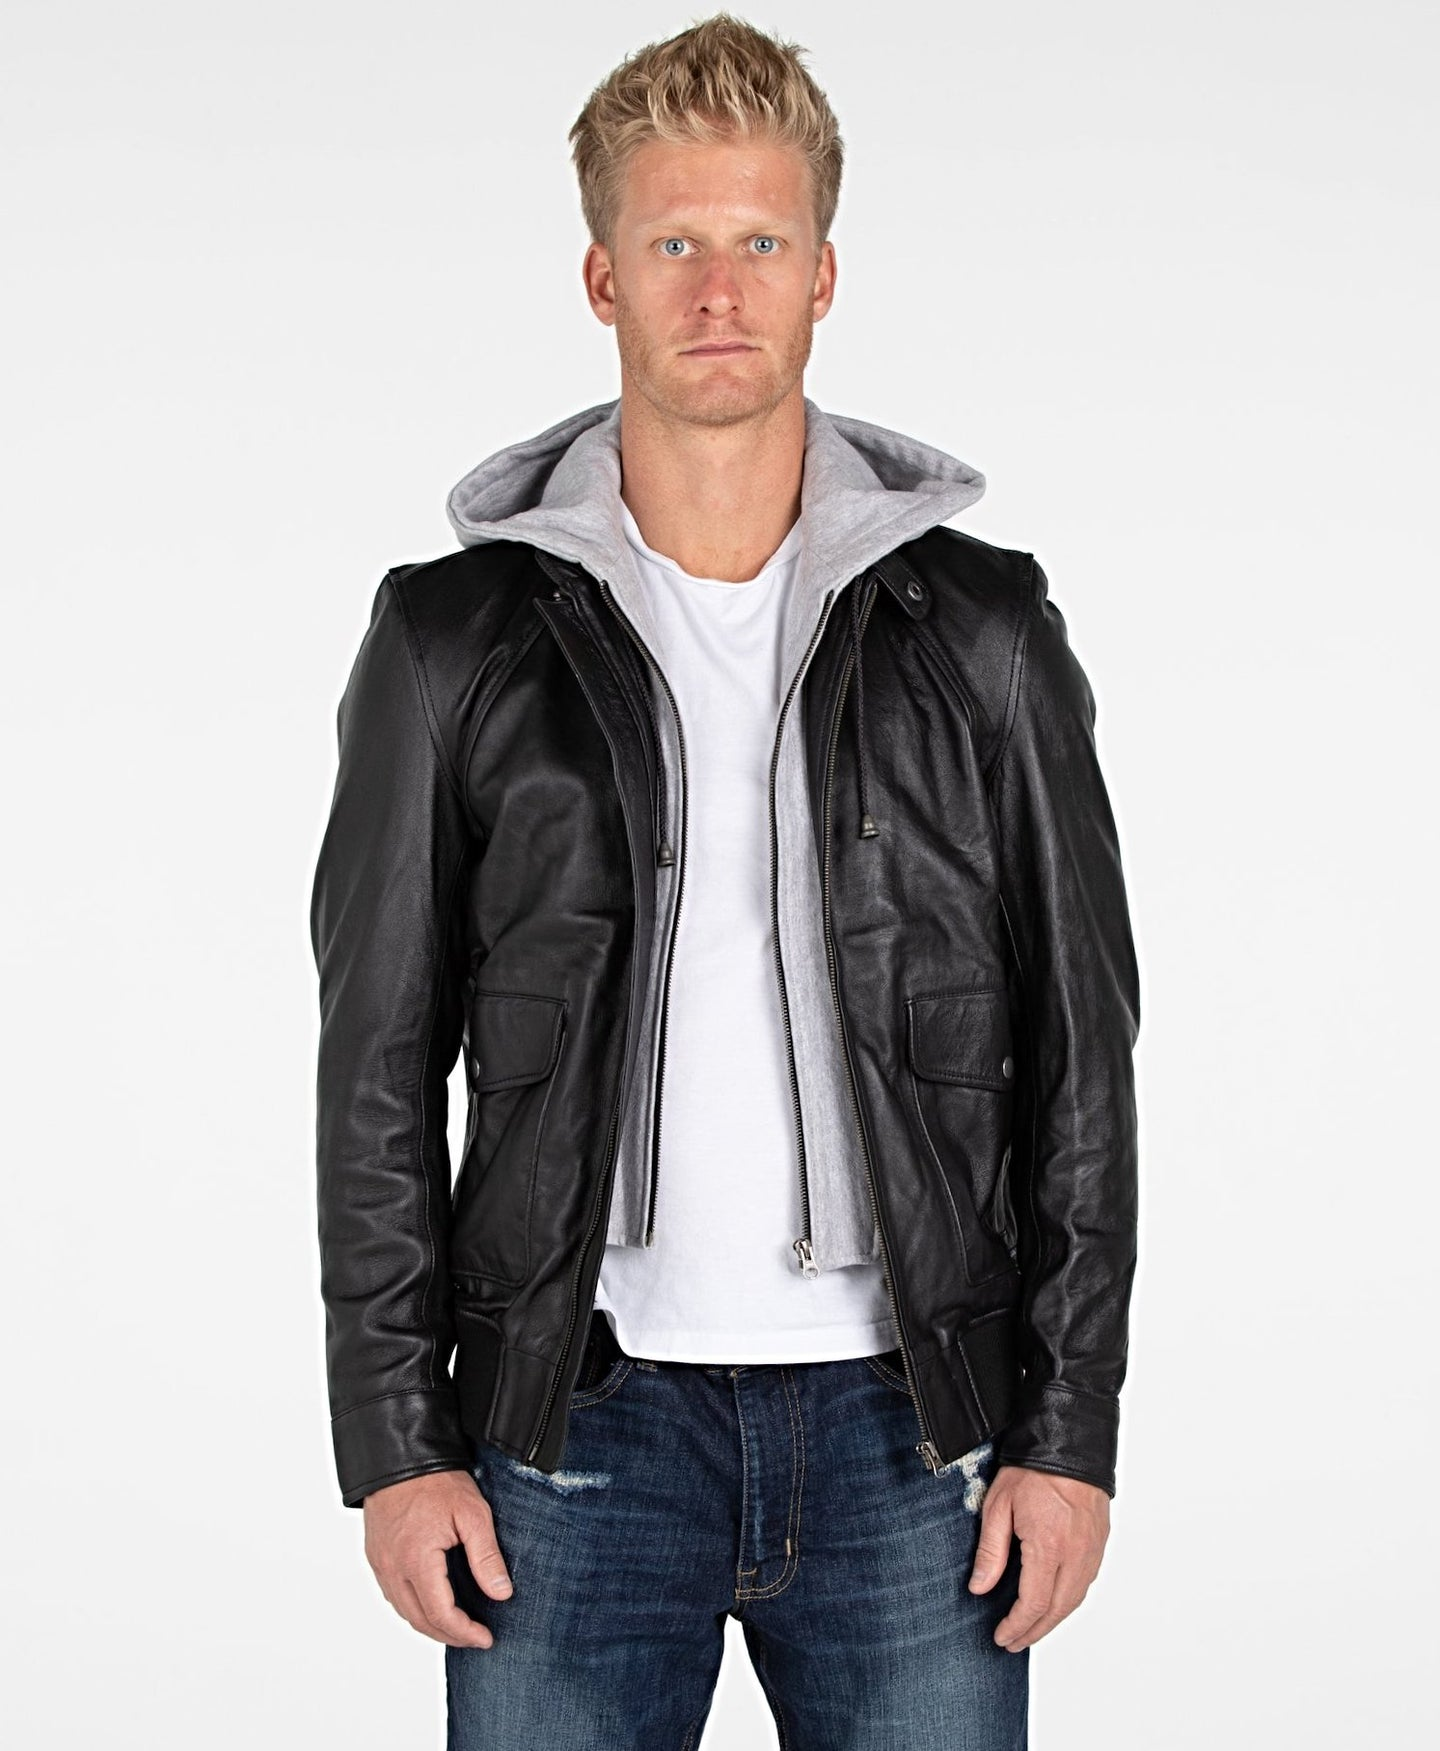 Men's Lambskin Hooded Leather Bomber Jacket - Discounted!-Mens Leather Jacket-Fadcloset-XS-Black-FADCLOSET CA